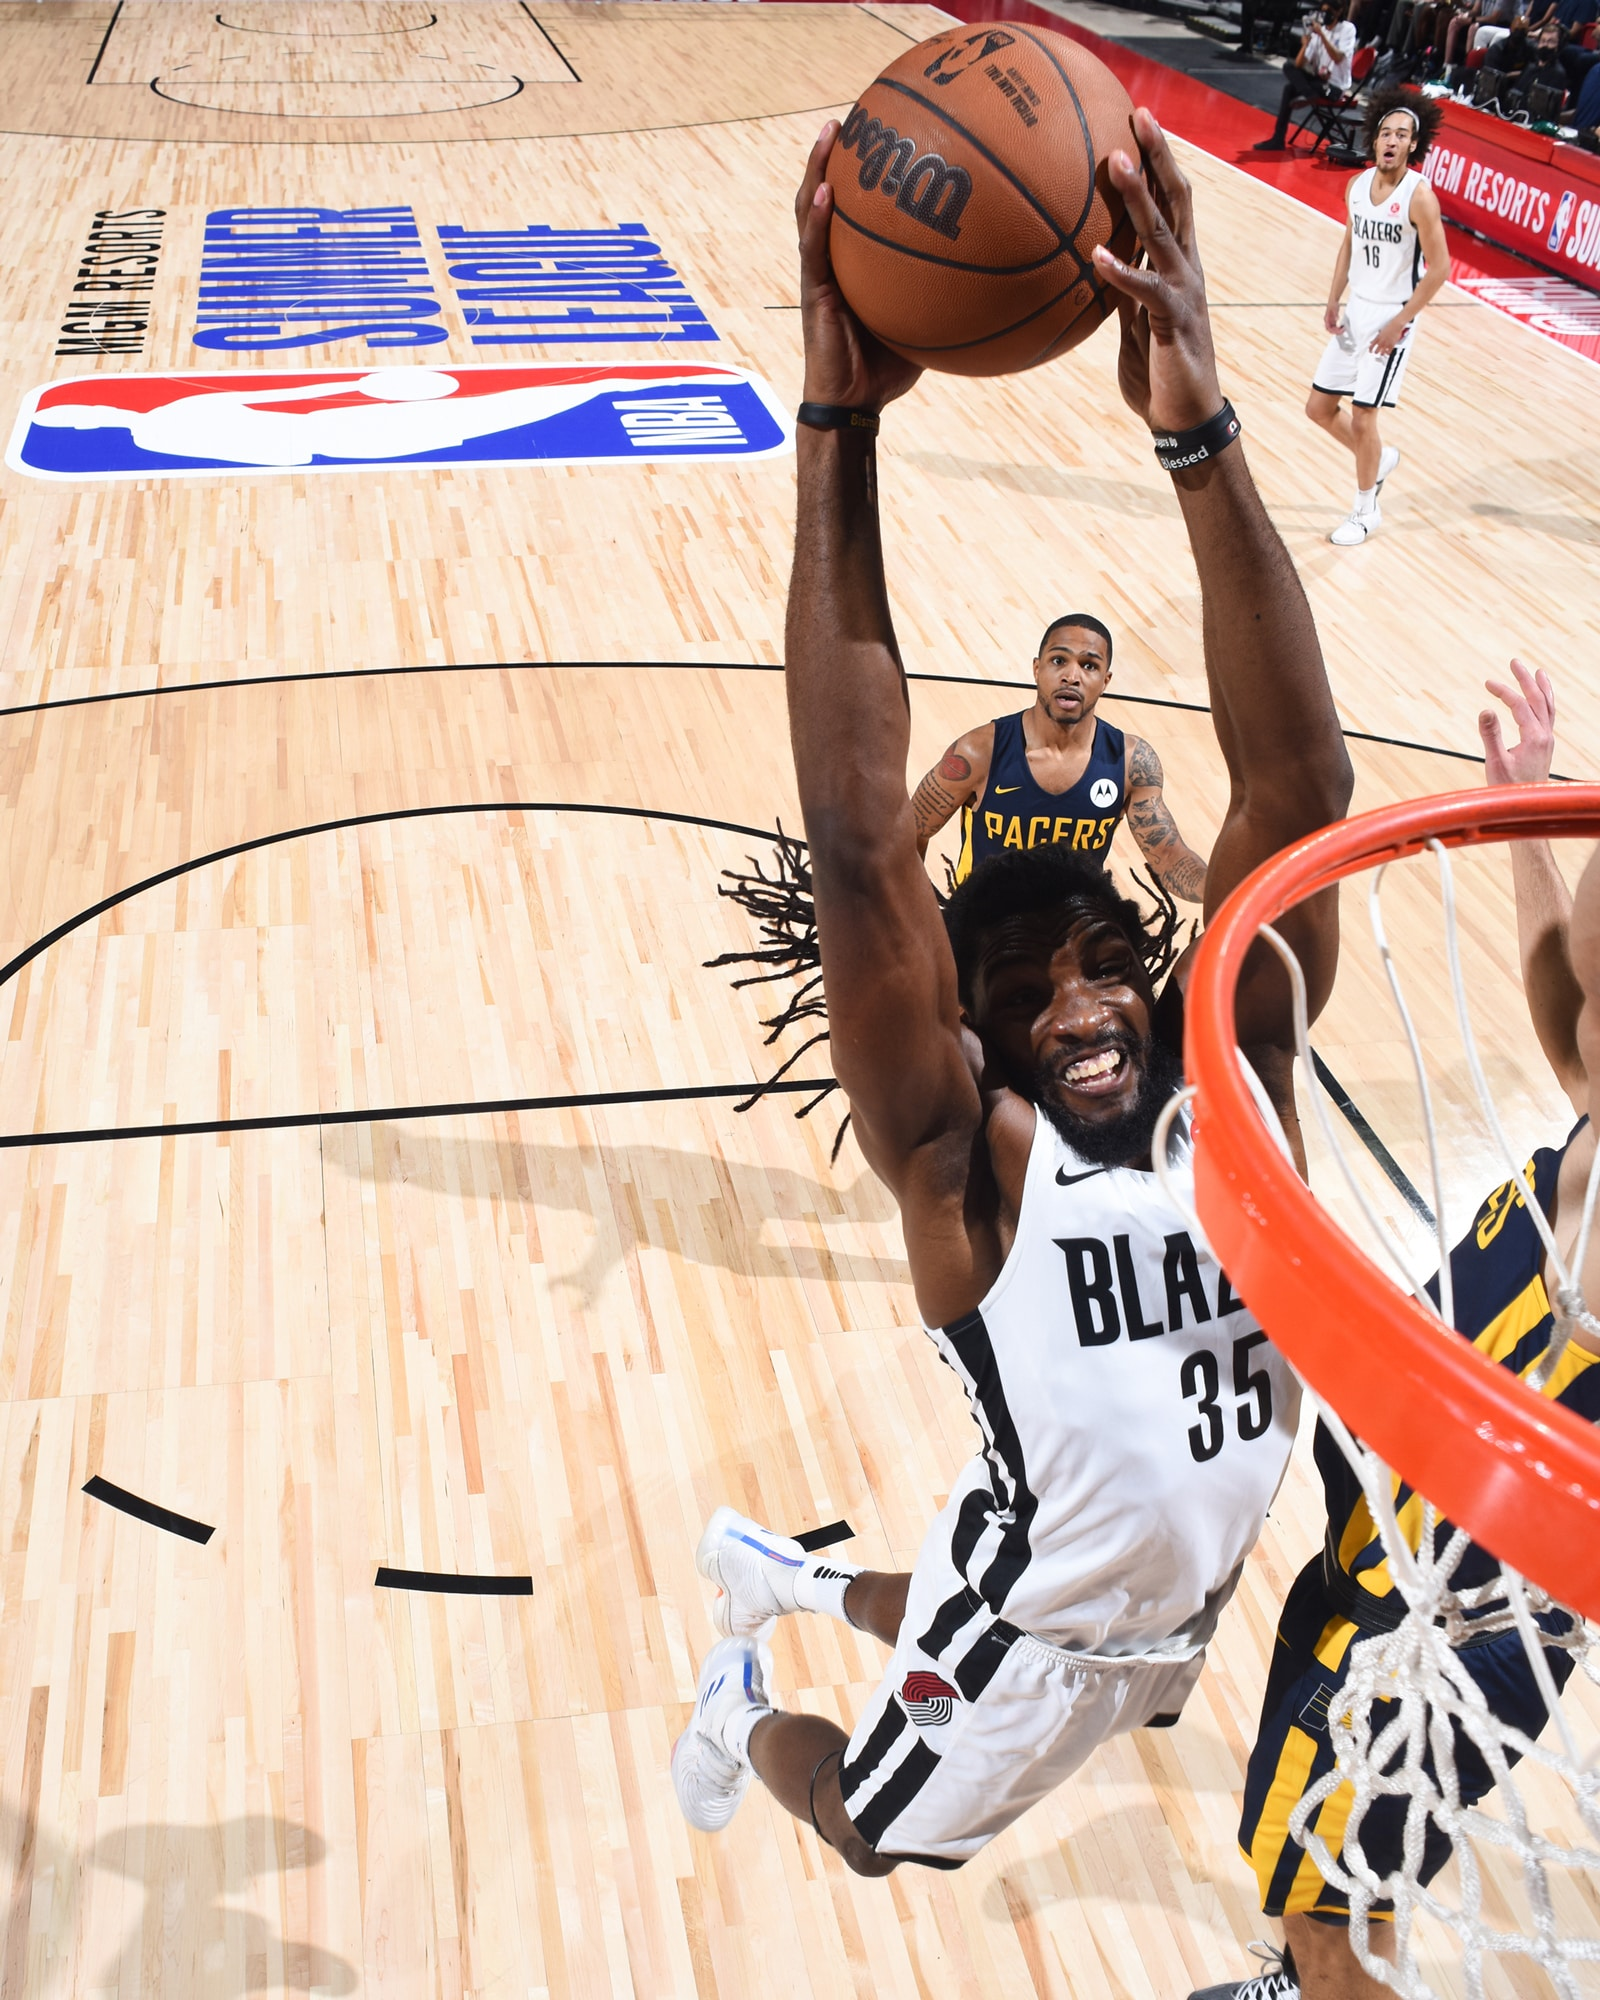 Ken Faried goes up for a dunk